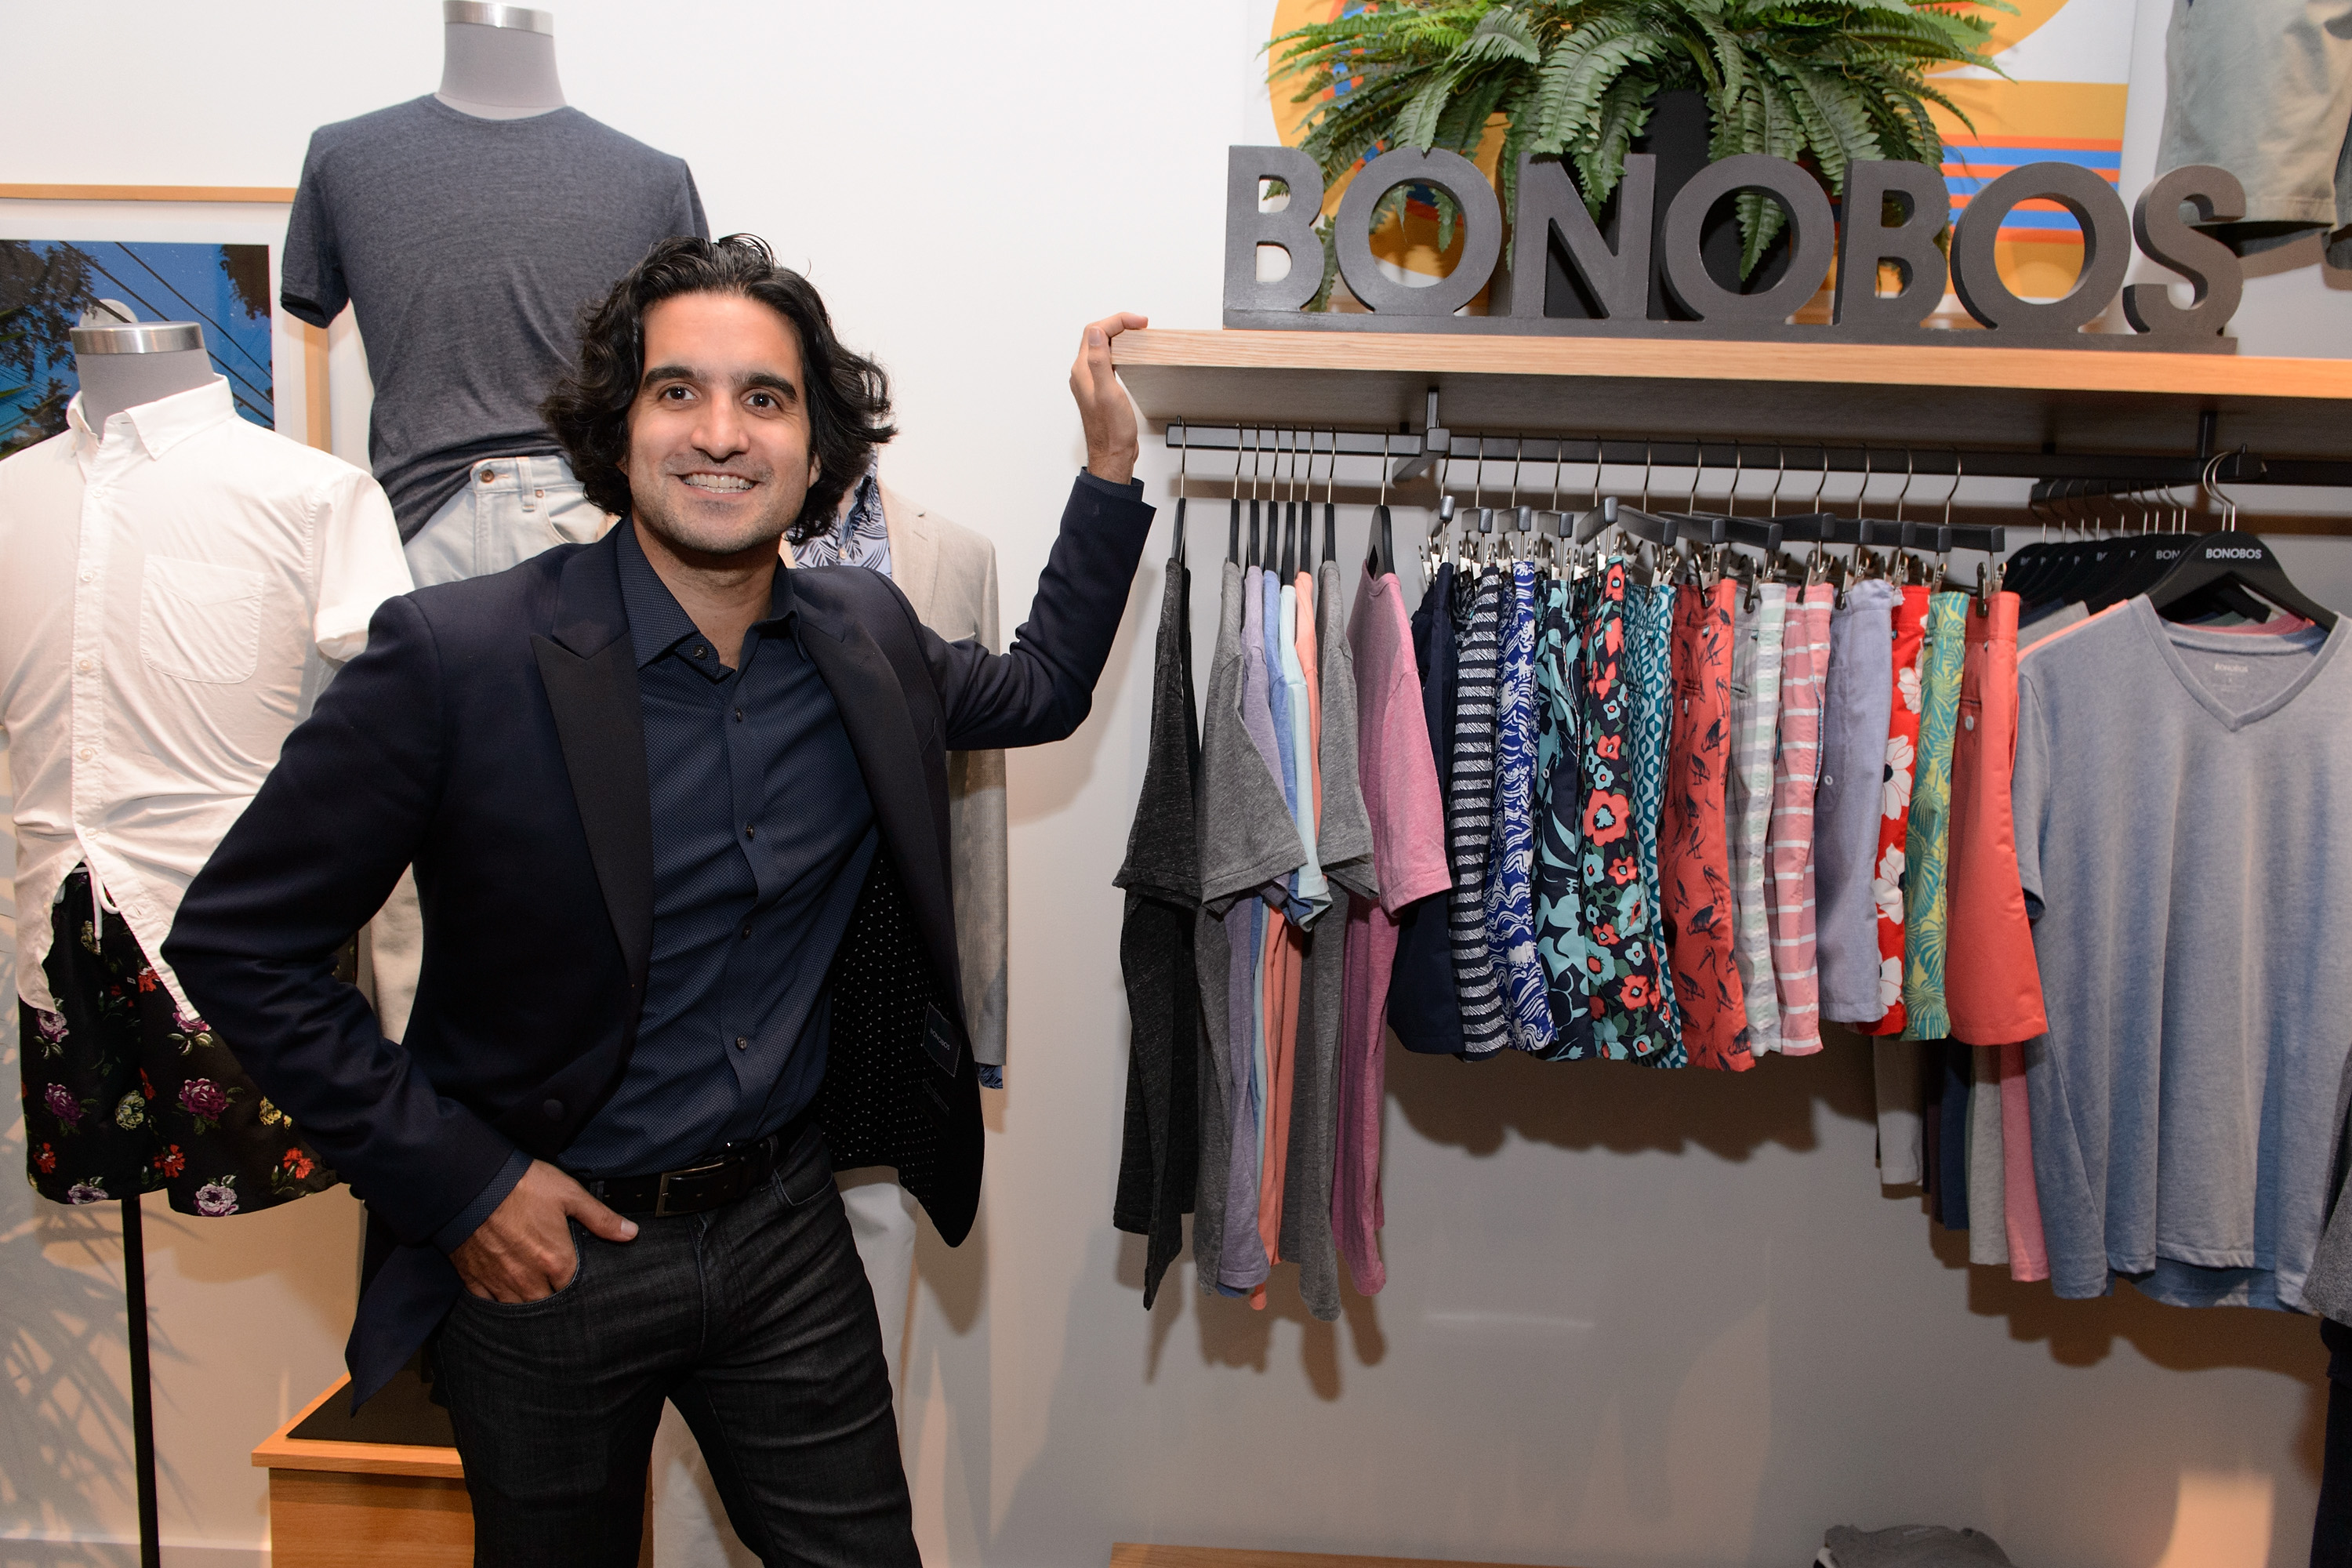 Walmart paid $300 million for Bonobos. Two years later, the men's fashion brand is laying off staff.